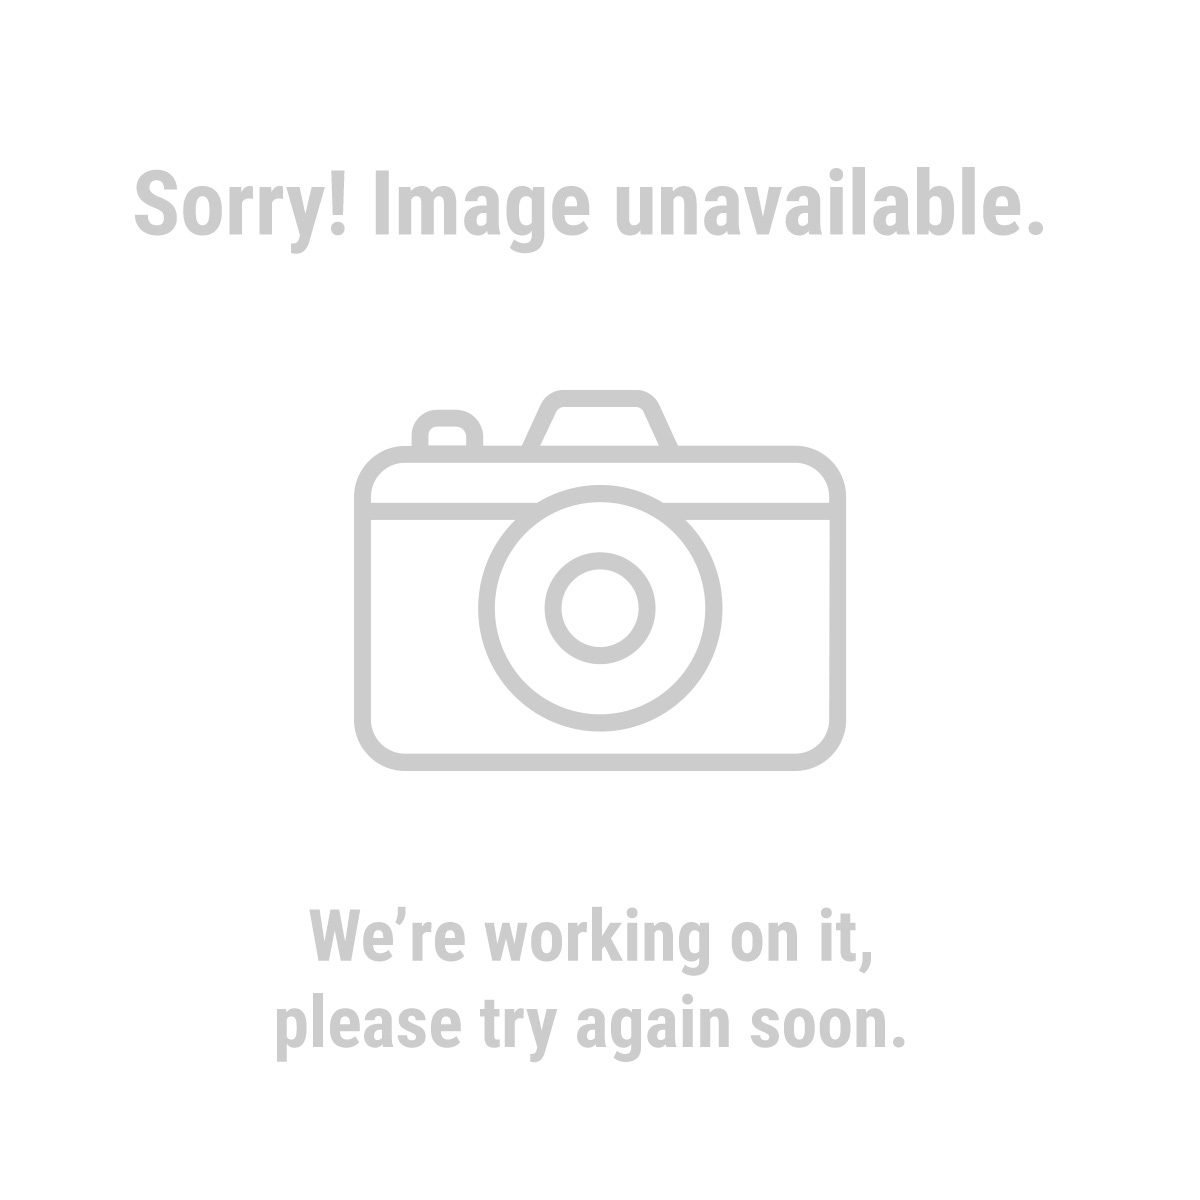 33 39 fiberglass electrical wire coaxial cable running rods